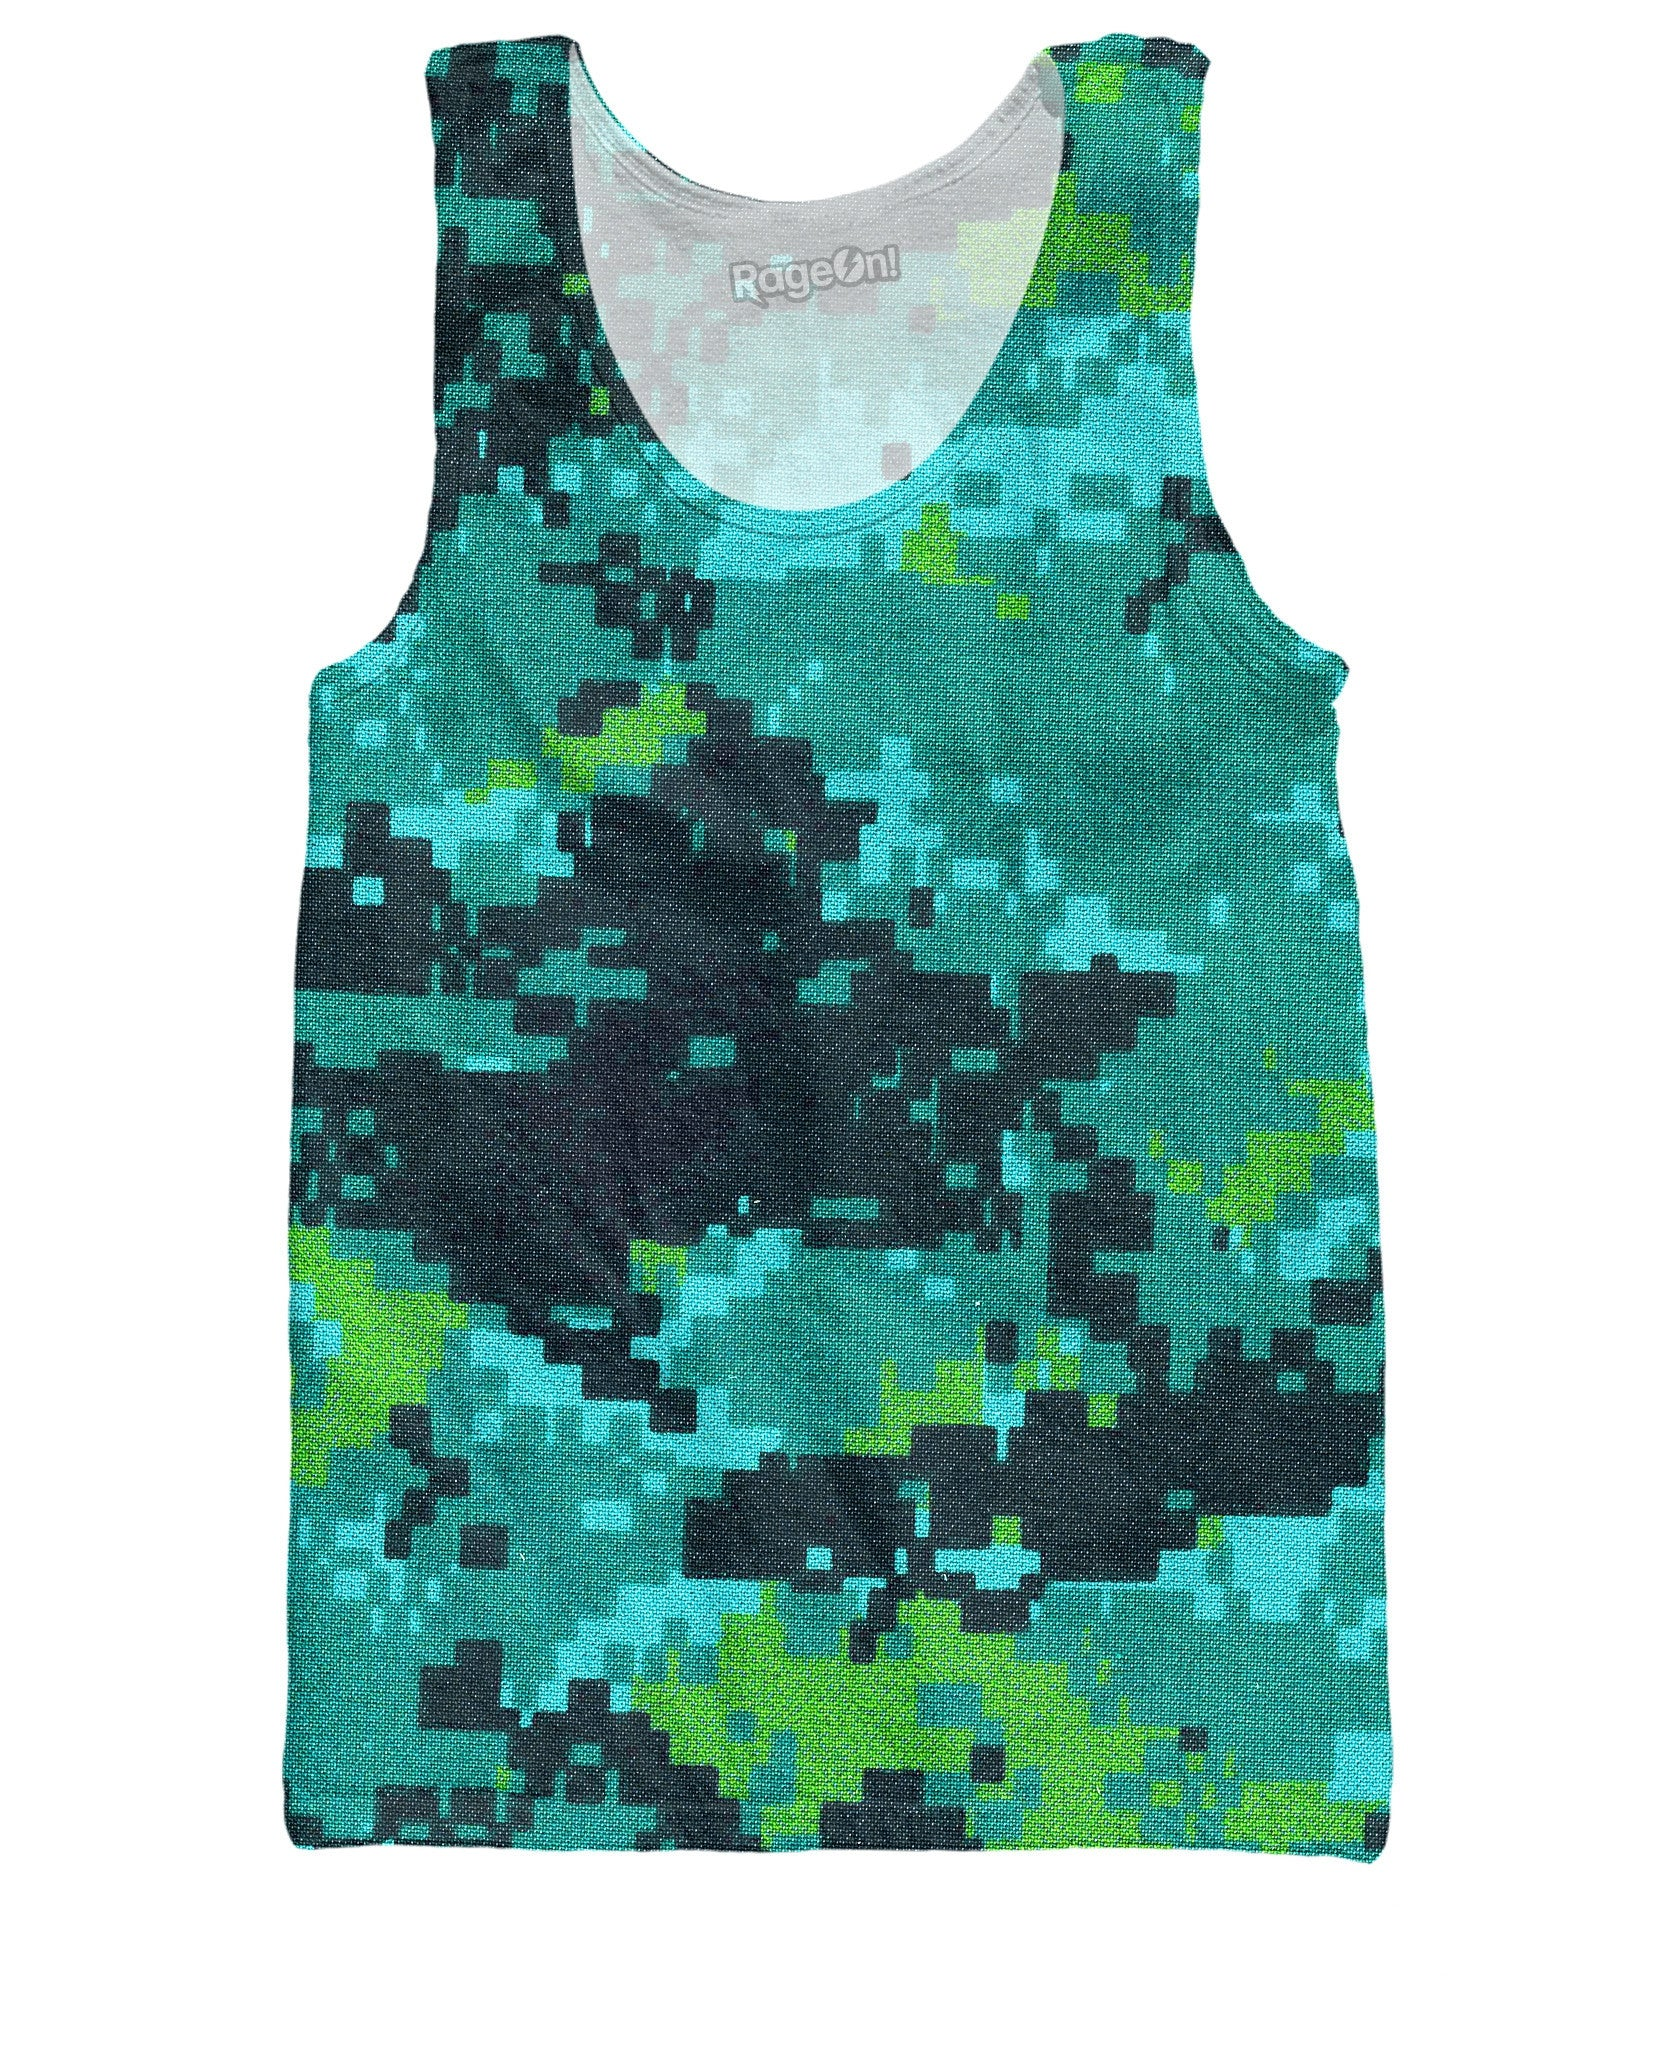 Digital Camo Tank Top